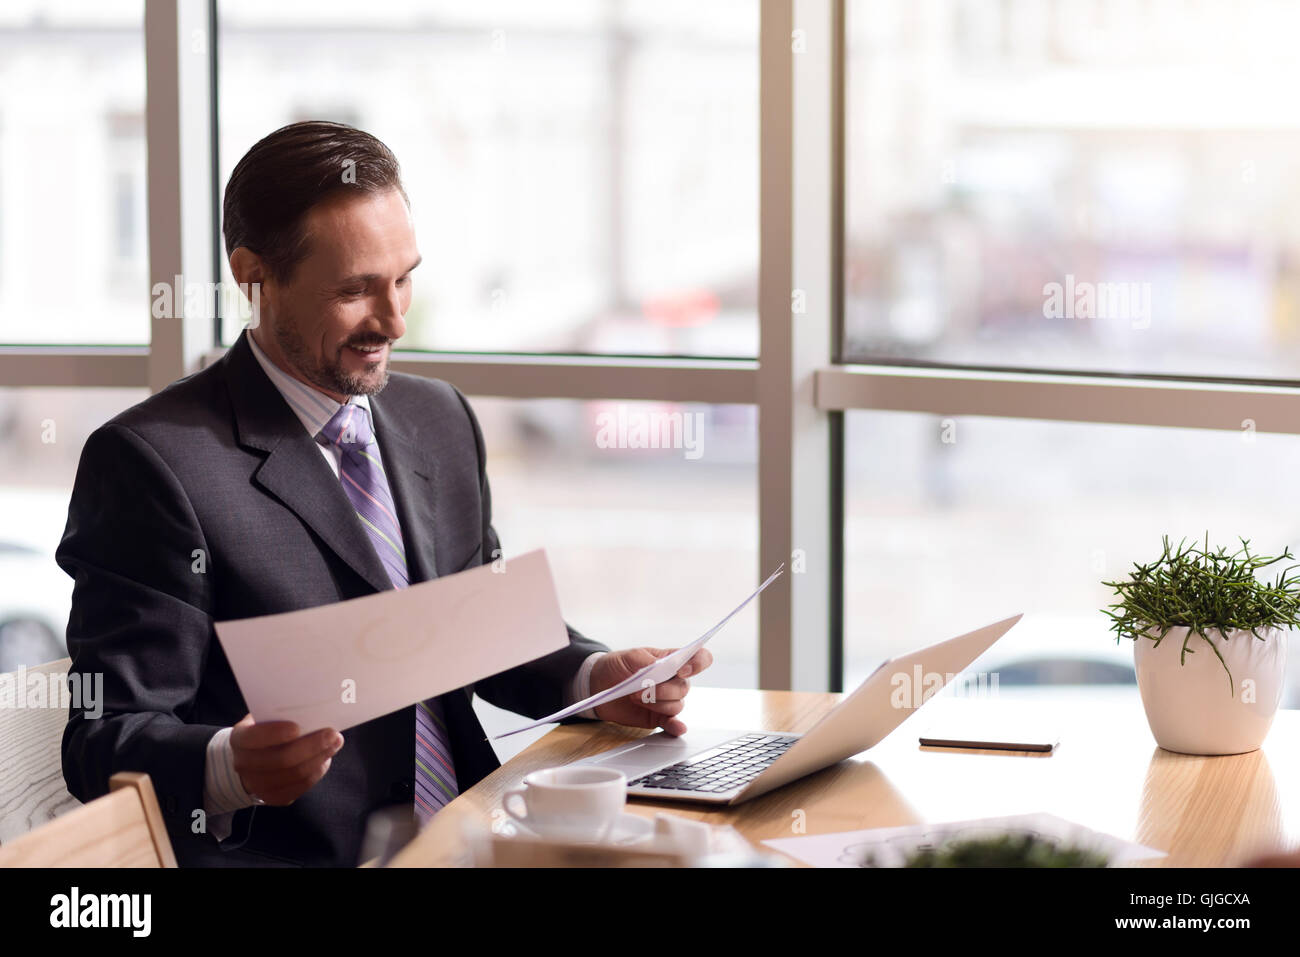 Joyful man working with paper - Stock Image